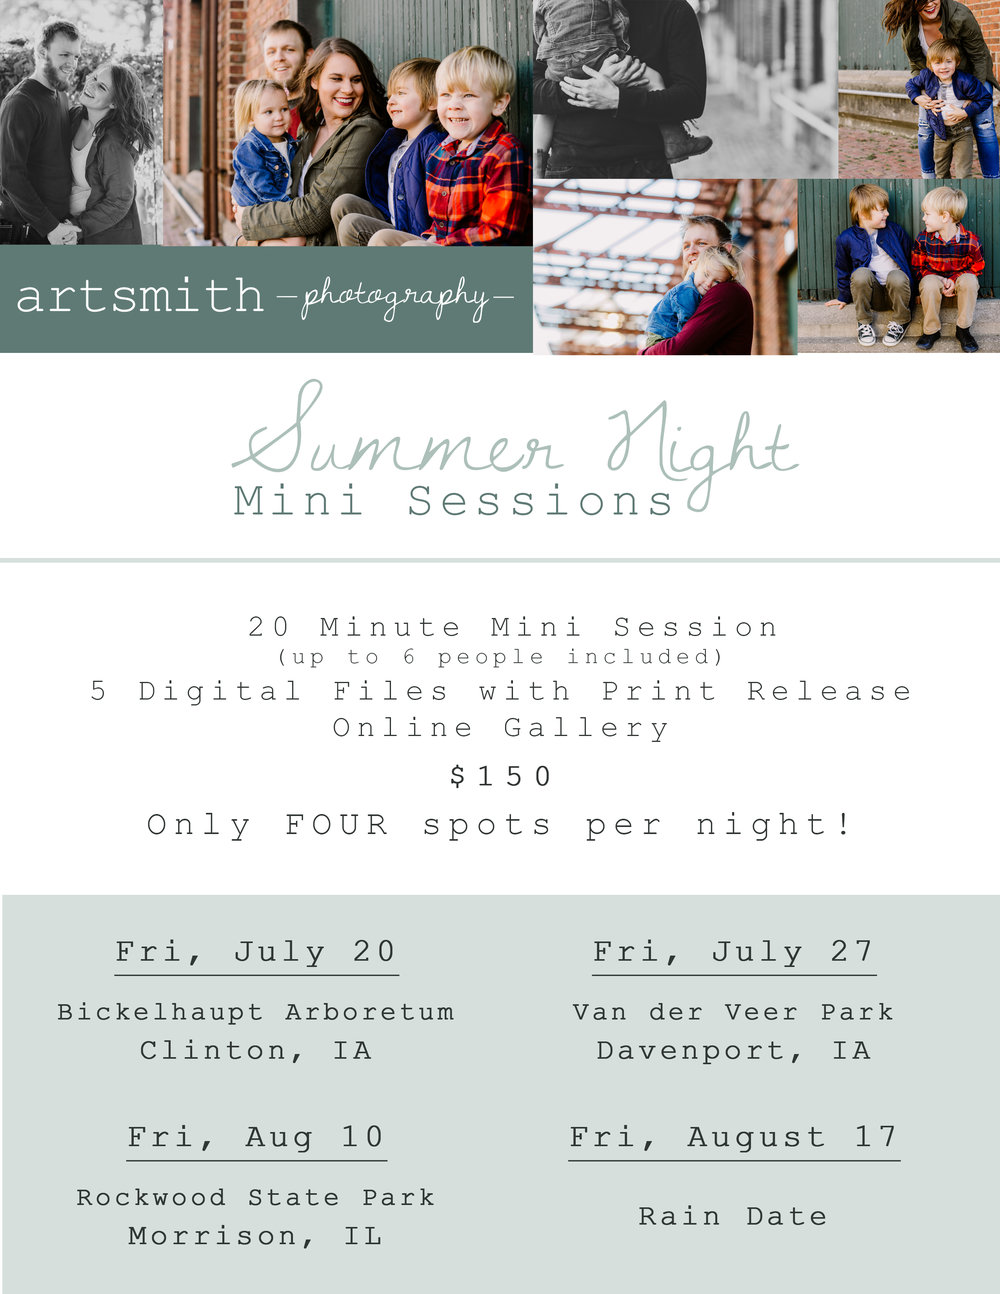 Summer Night Mini Sessions.jpg